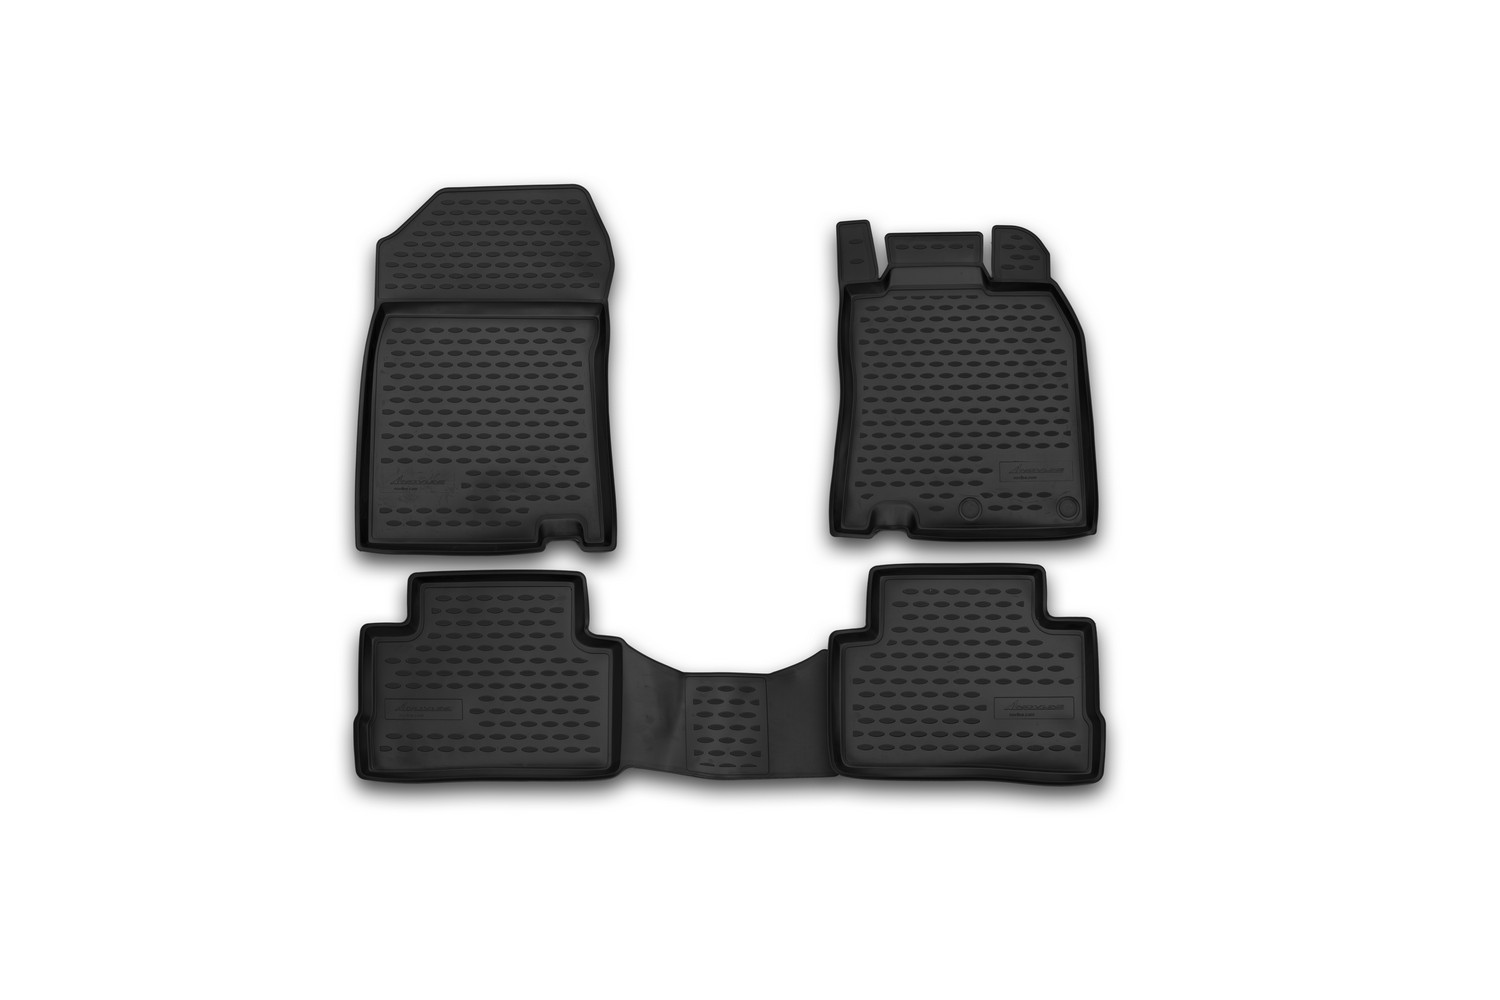 Floor mats qashqai - Sentinel Nissan Qashqai Rubber Floor Mats Heavy Duty 3d Mud Mats Set Of 5 2014on